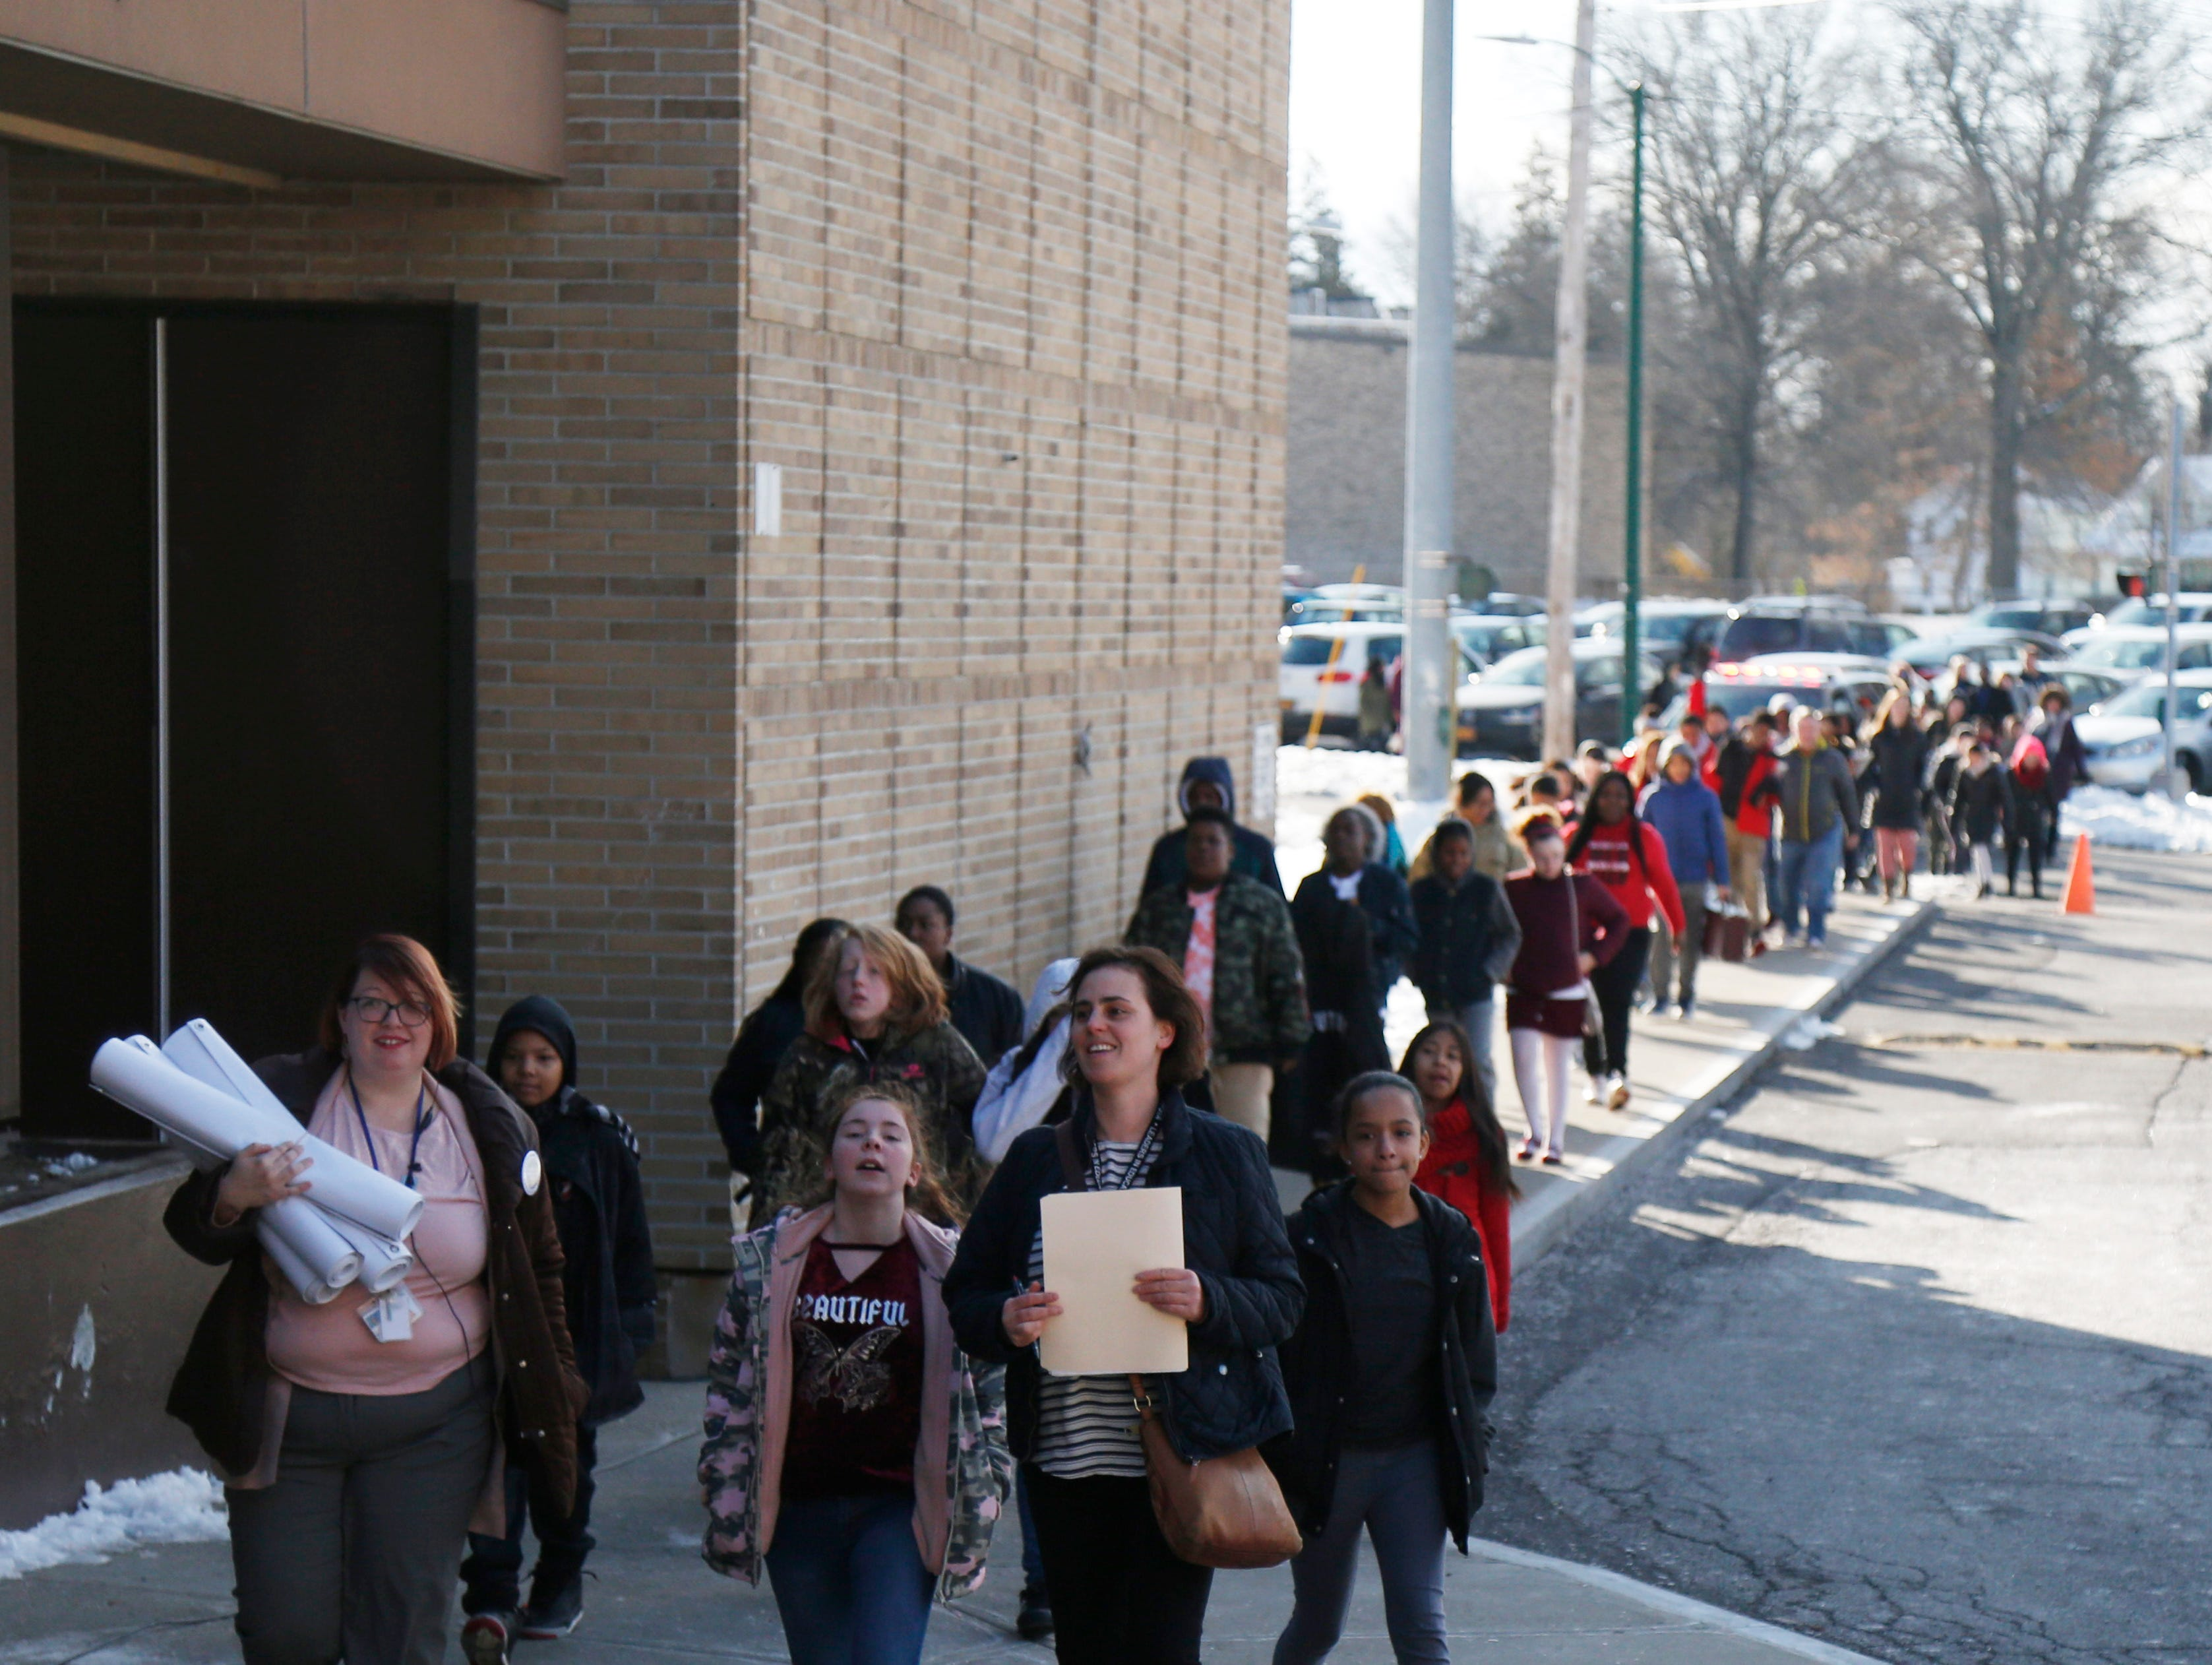 Students from Poughkeepsie Middle School arrive to participate in Thursday's Martin Luther King Celebration at Poughkeepsie High School on February 14, 2019.